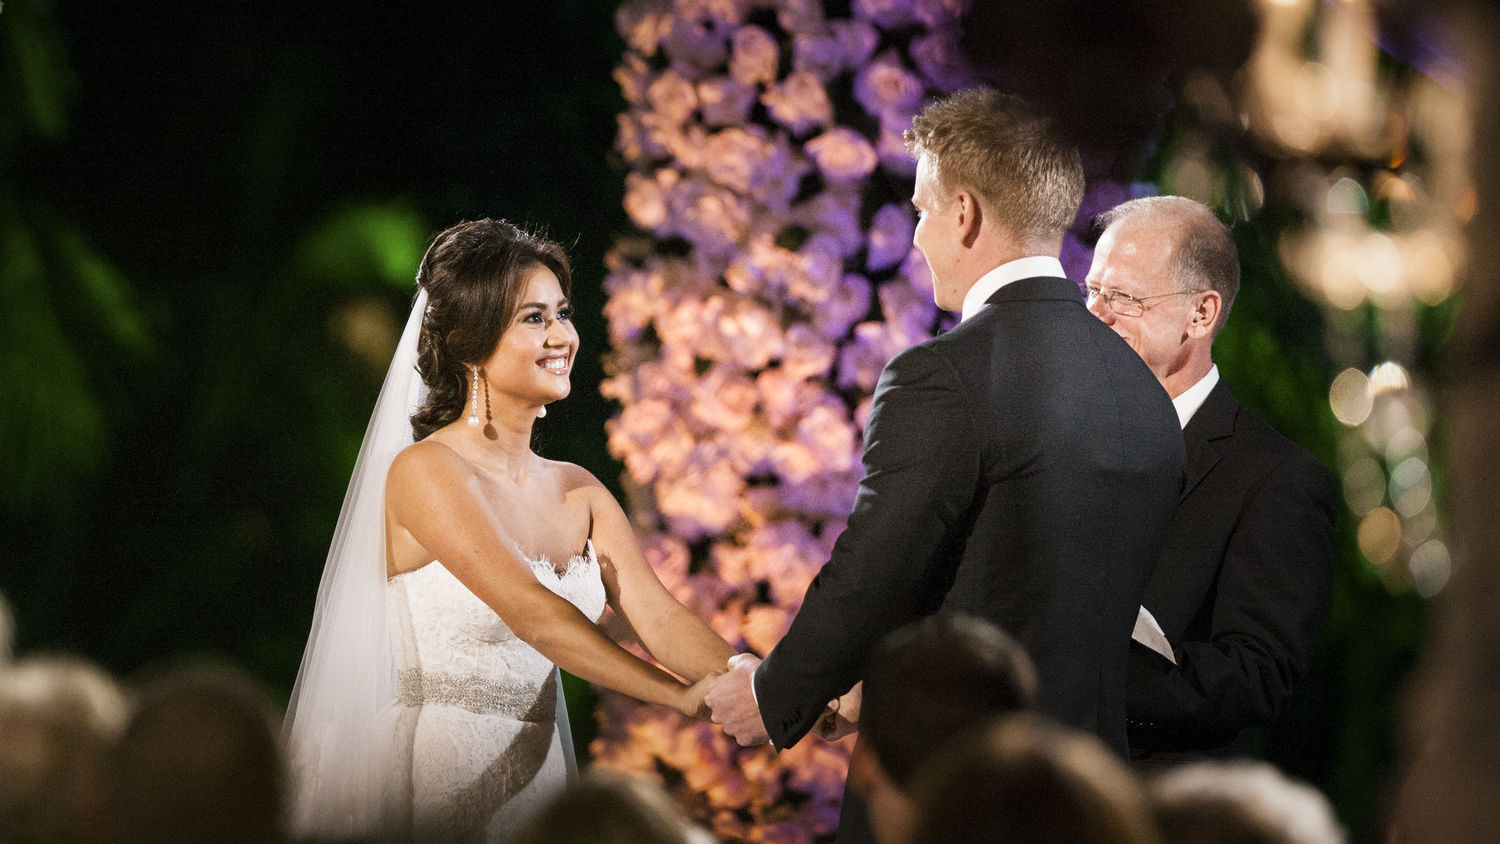 wedding-abc-bachelor-sean-lowe-catherine-guidici-johnandjoseph151.jpg